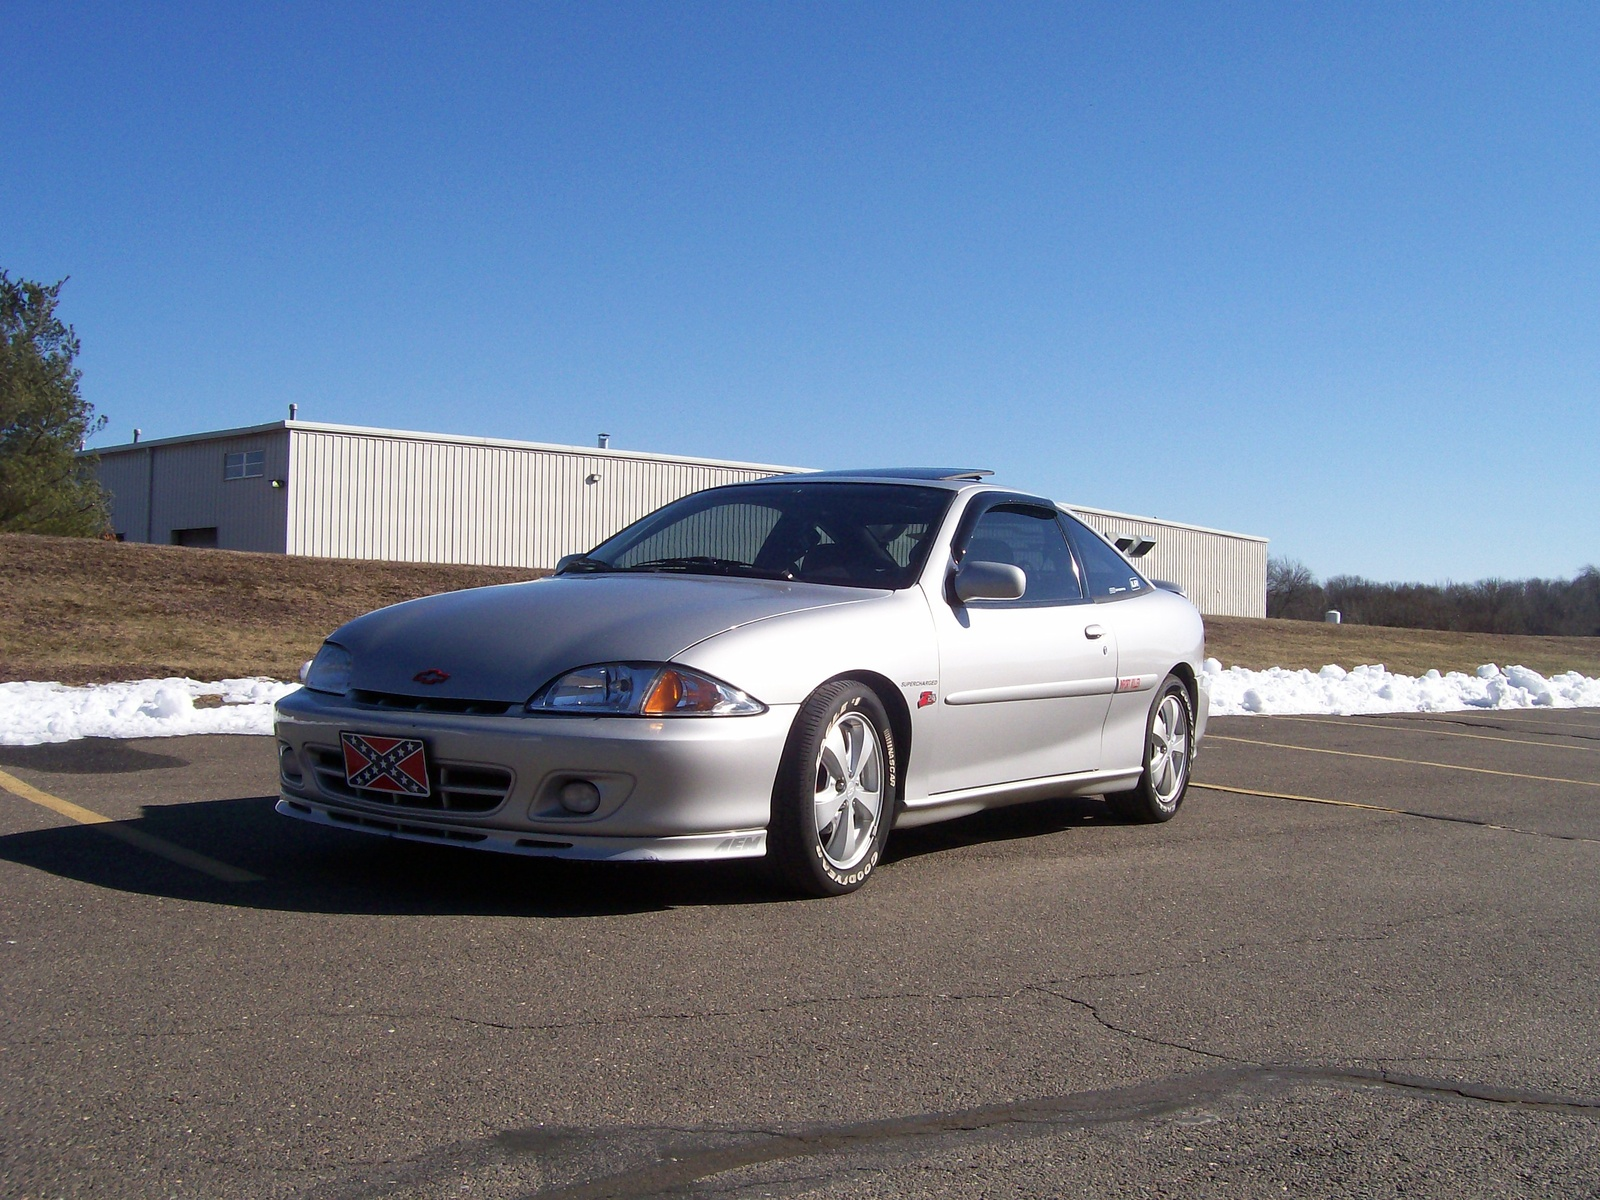 picture of 2002 chevrolet cavalier z24 coupe exterior. Cars Review. Best American Auto & Cars Review